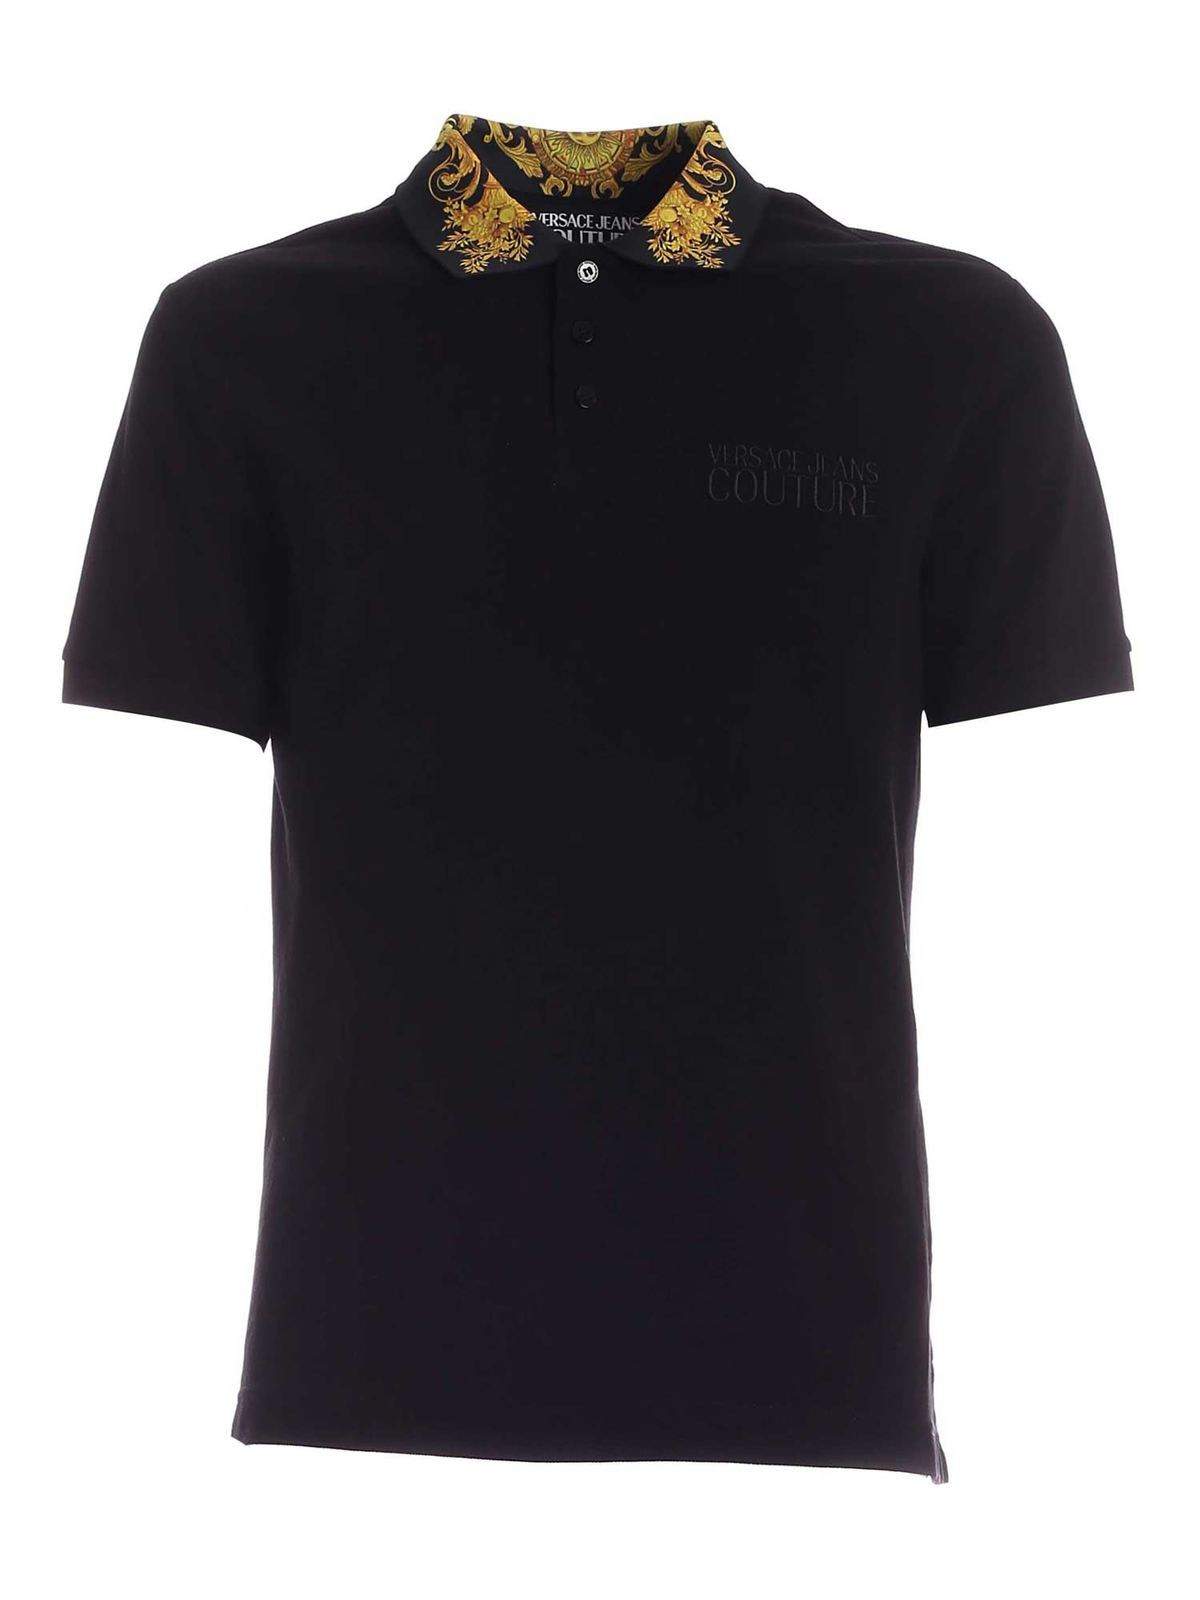 VERSACE JEANS COUTURE EMBROIDERY POLO SHIRT IN BLACK